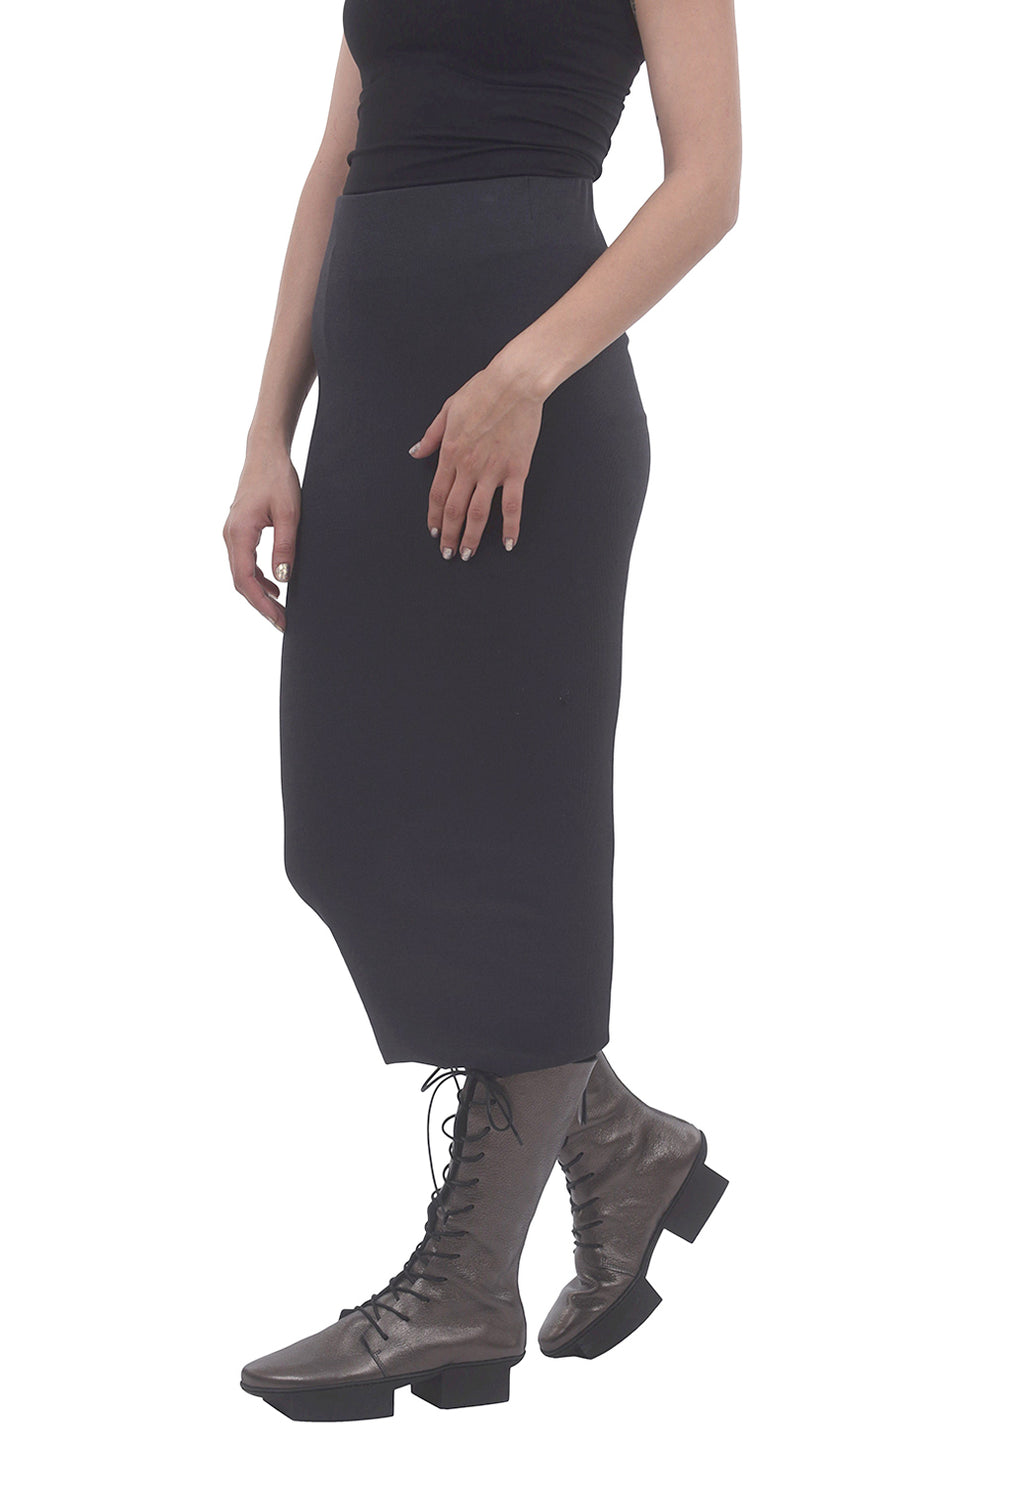 Studio B3 Myra Ribbed Tube Skirt, Graphite